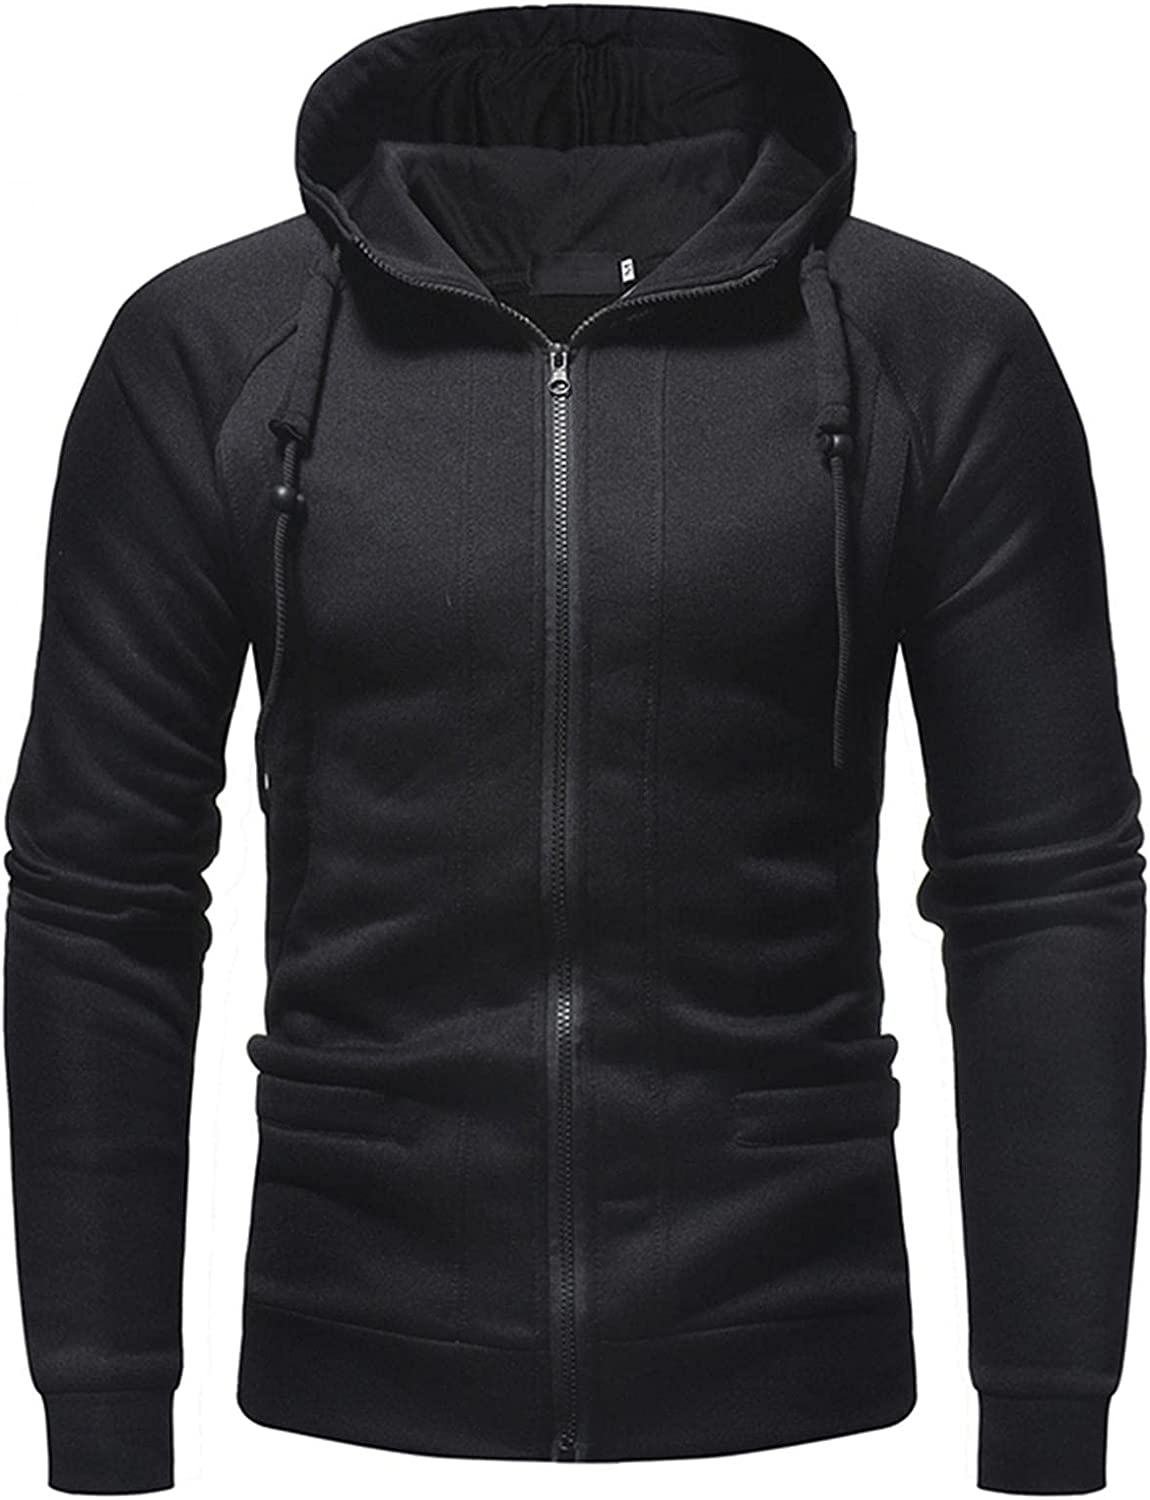 Huangse Mens Gym Workout Hoodies Zipper Athletic Bodybuilding Muscle Lightweight Hooded Sweatshirts with Pockets